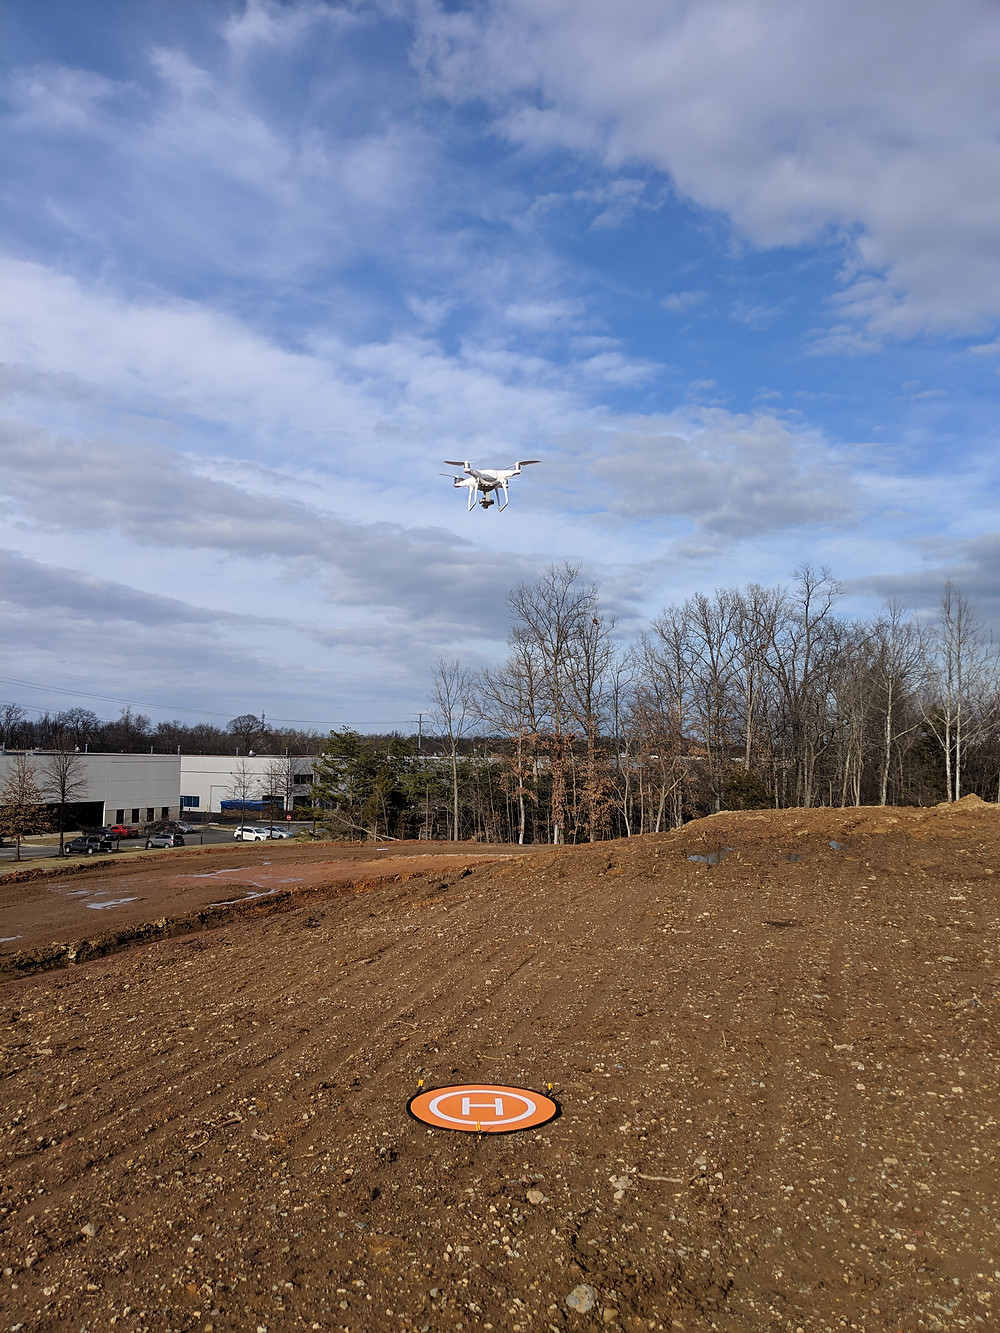 UAS flying to it's predetermined altitude.